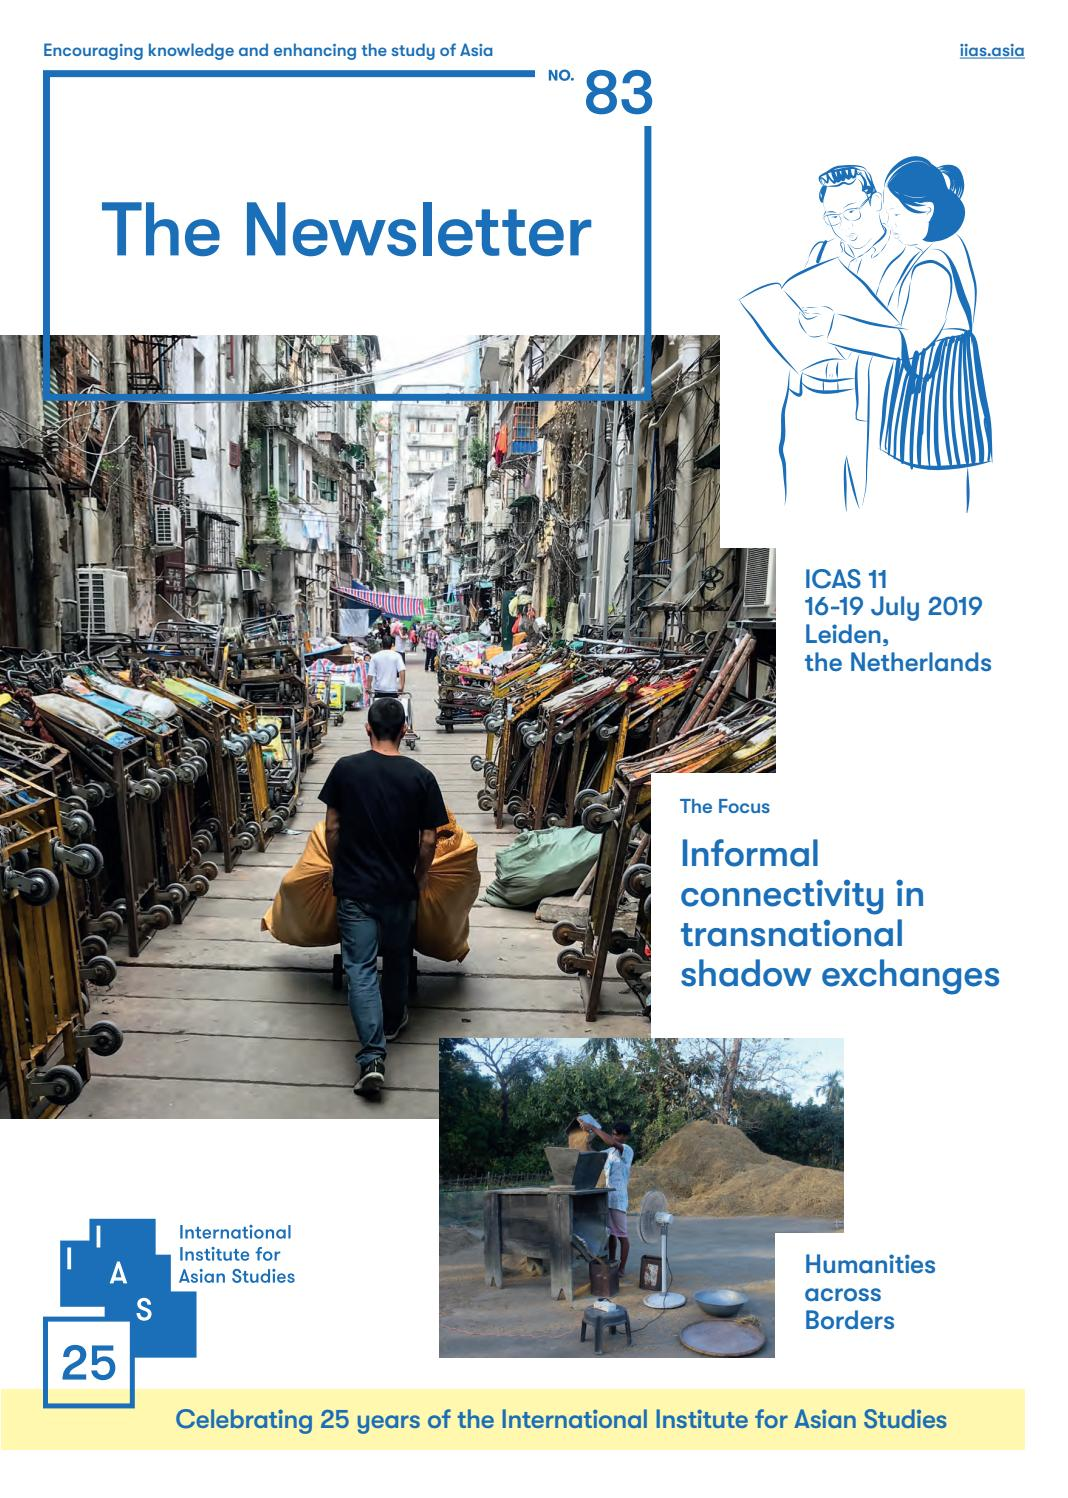 The Newsletter 83 Summer 2019 by International Institute for